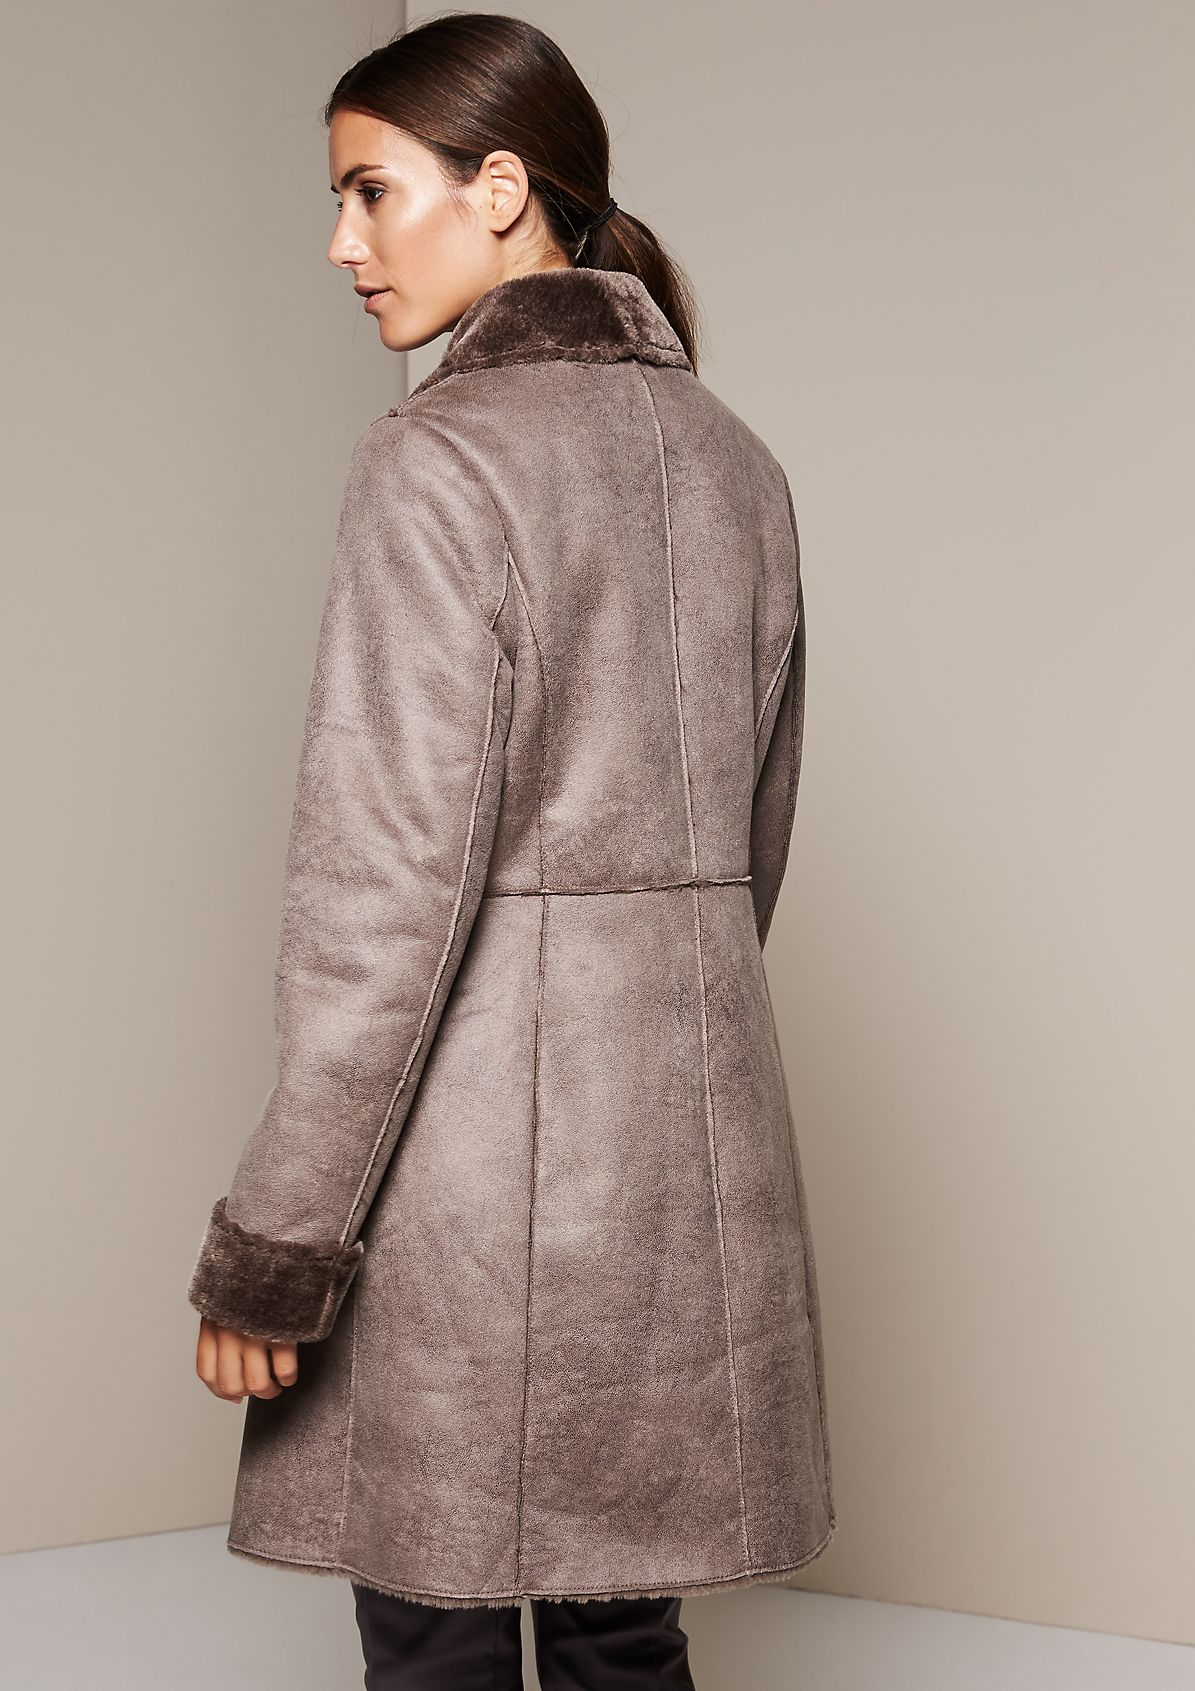 Warm suede coat with fake fur lining from s.Oliver